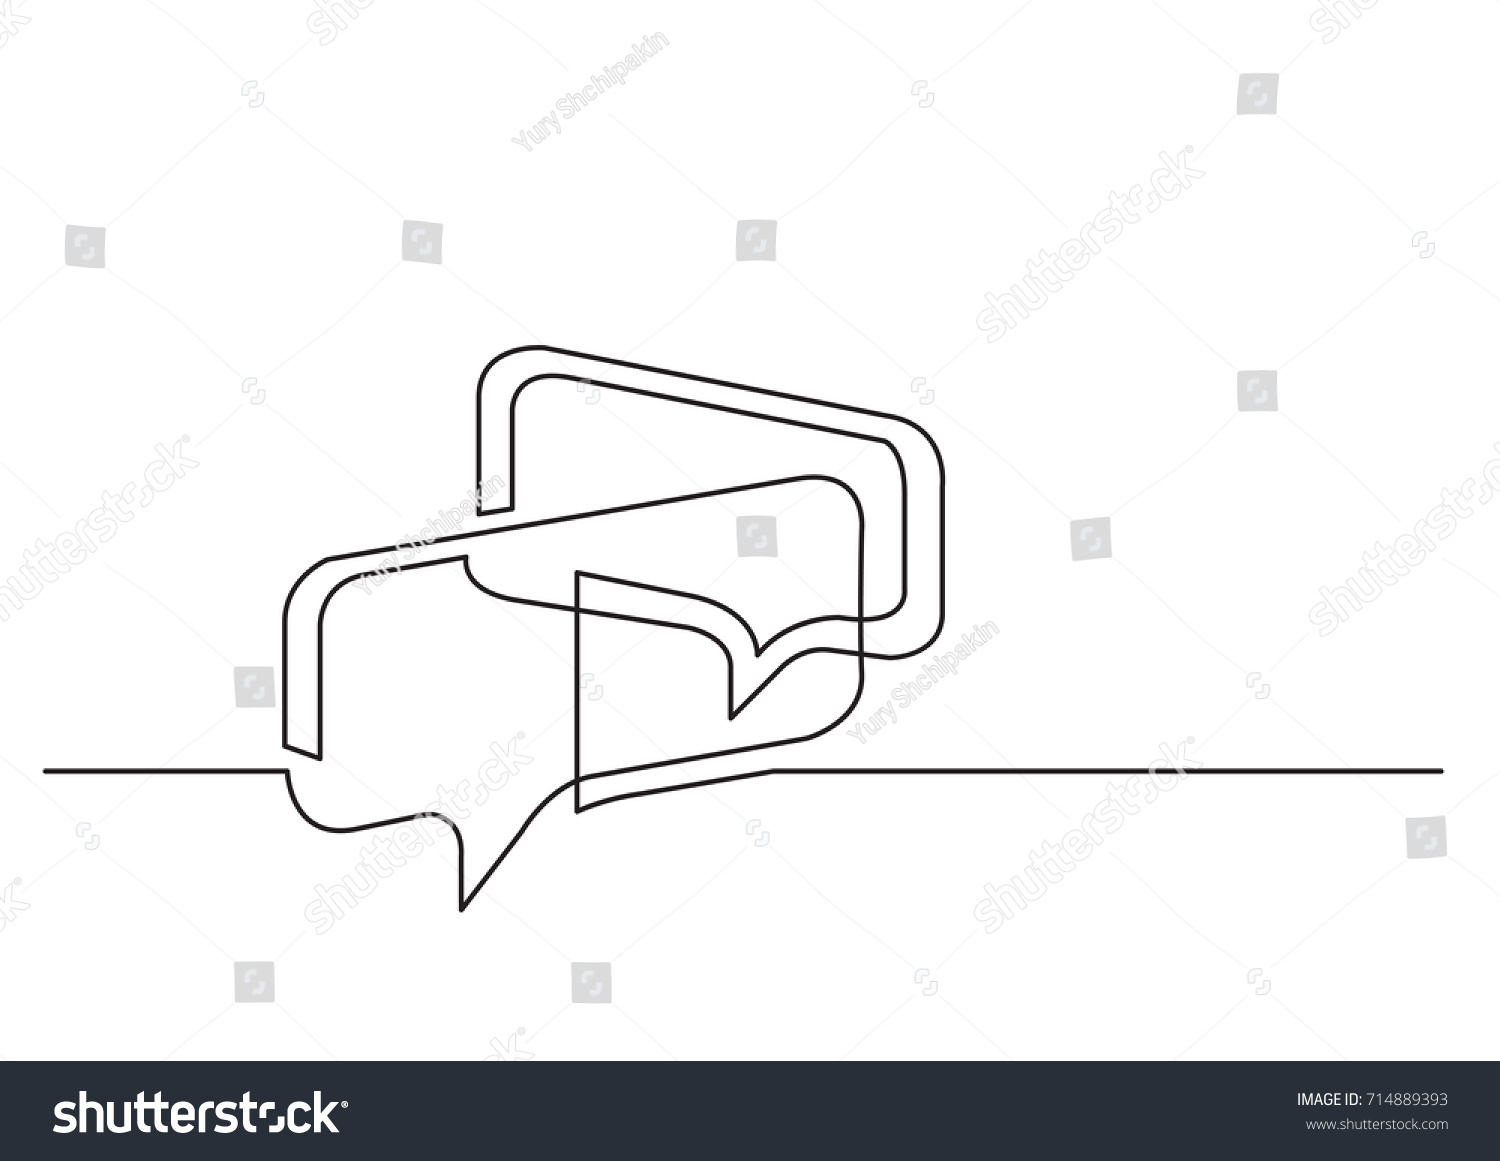 Line Drawing Pictures : One line drawing isolated vector object stock hd royalty